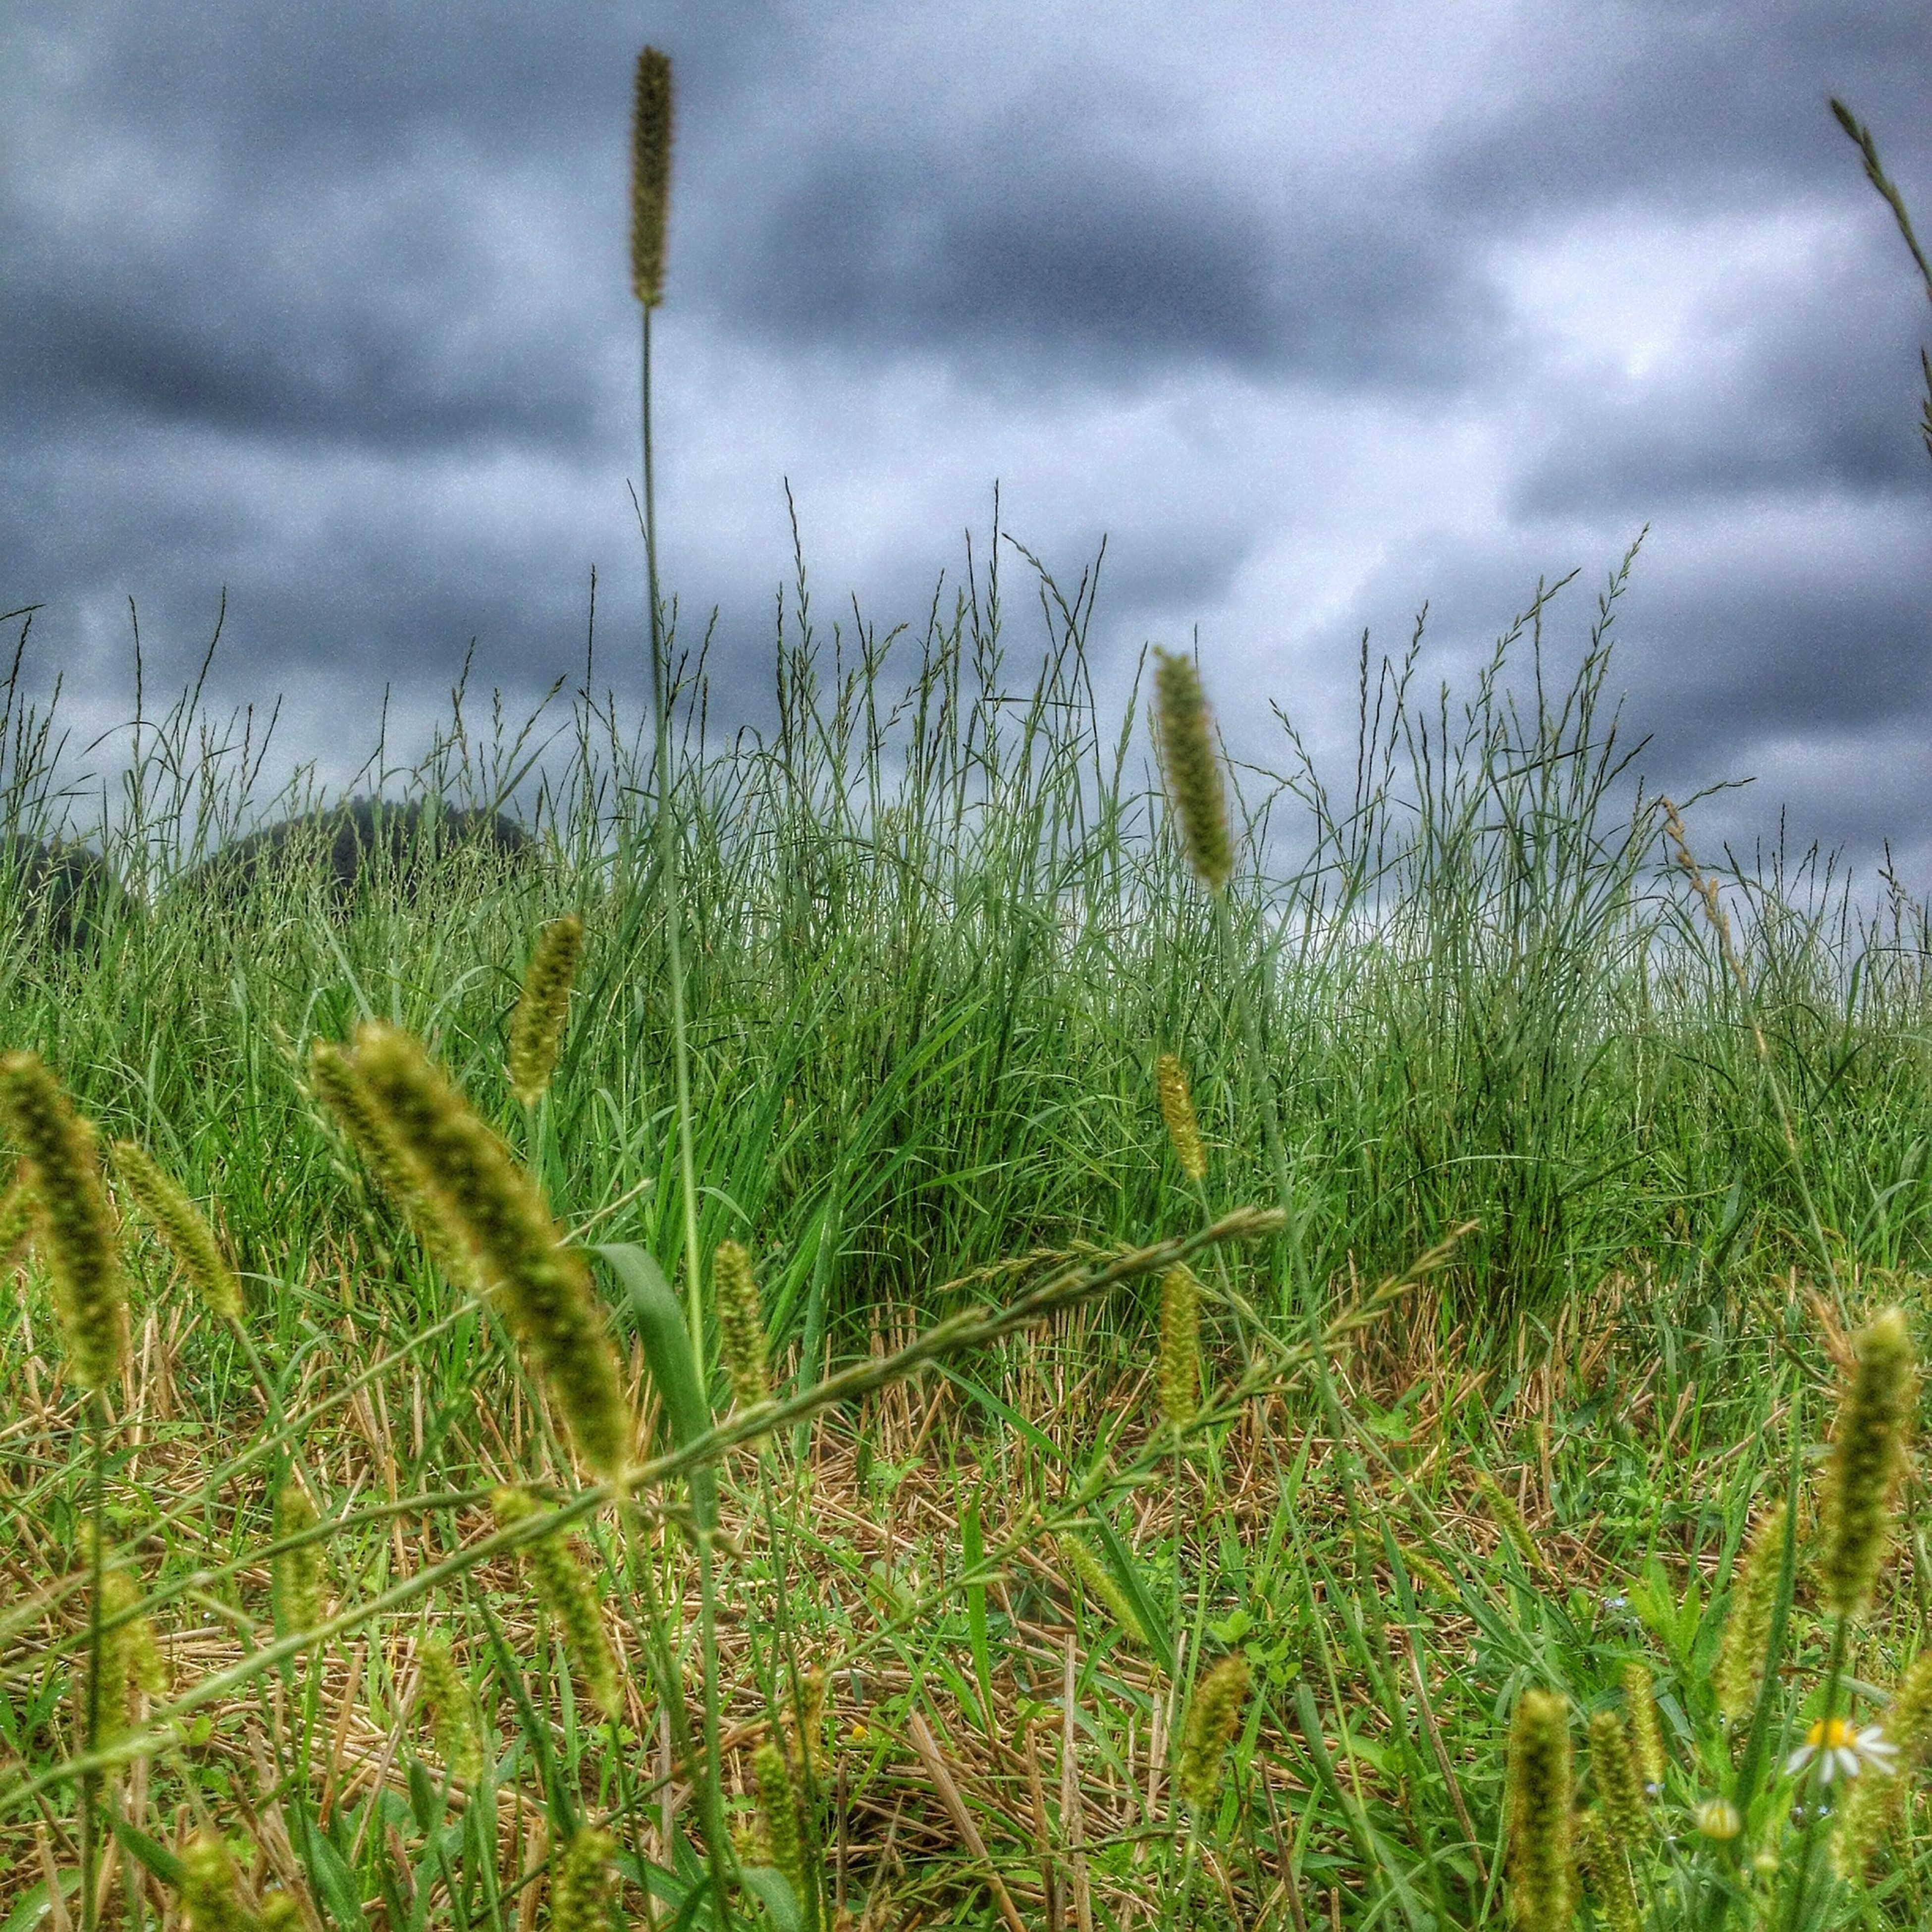 growth, sky, grass, field, plant, cloud - sky, nature, cloudy, green color, tranquility, beauty in nature, tranquil scene, cloud, agriculture, crop, growing, rural scene, scenics, landscape, day